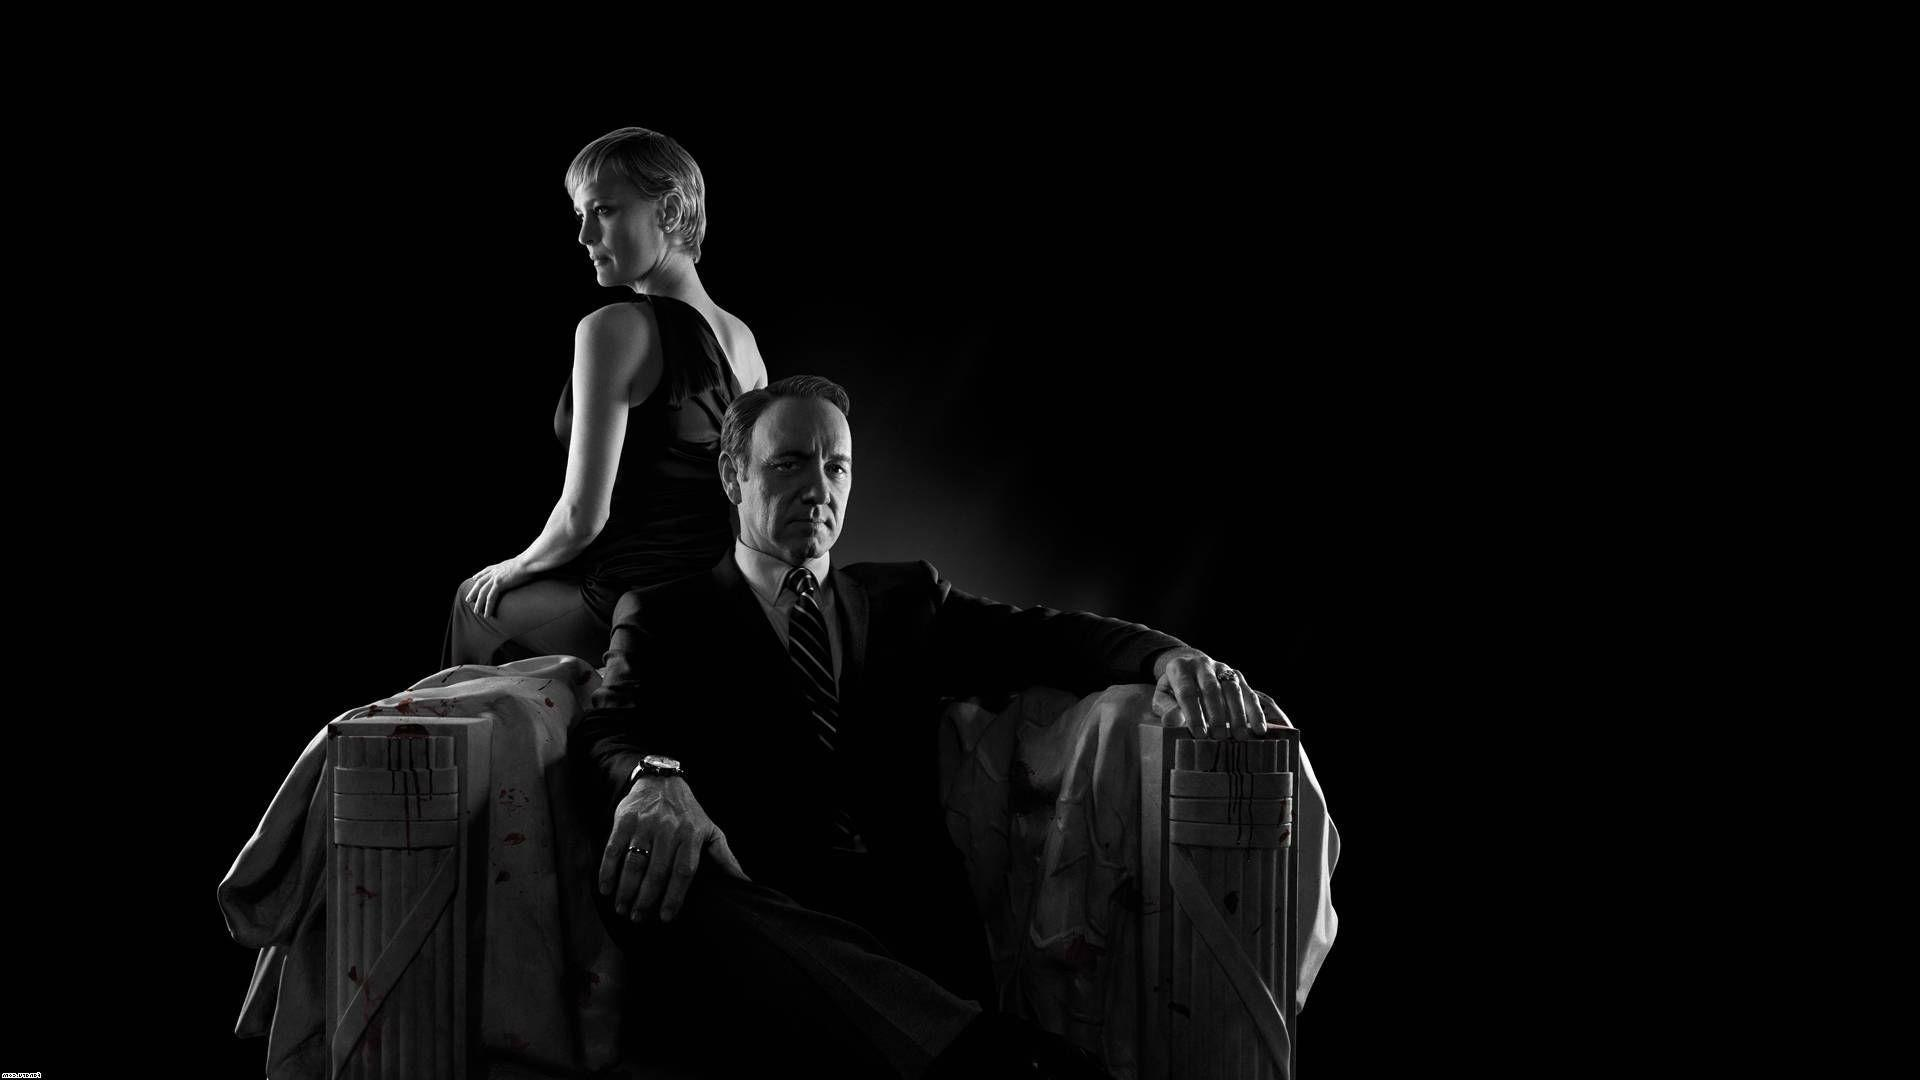 House of Cards wallpapers 1